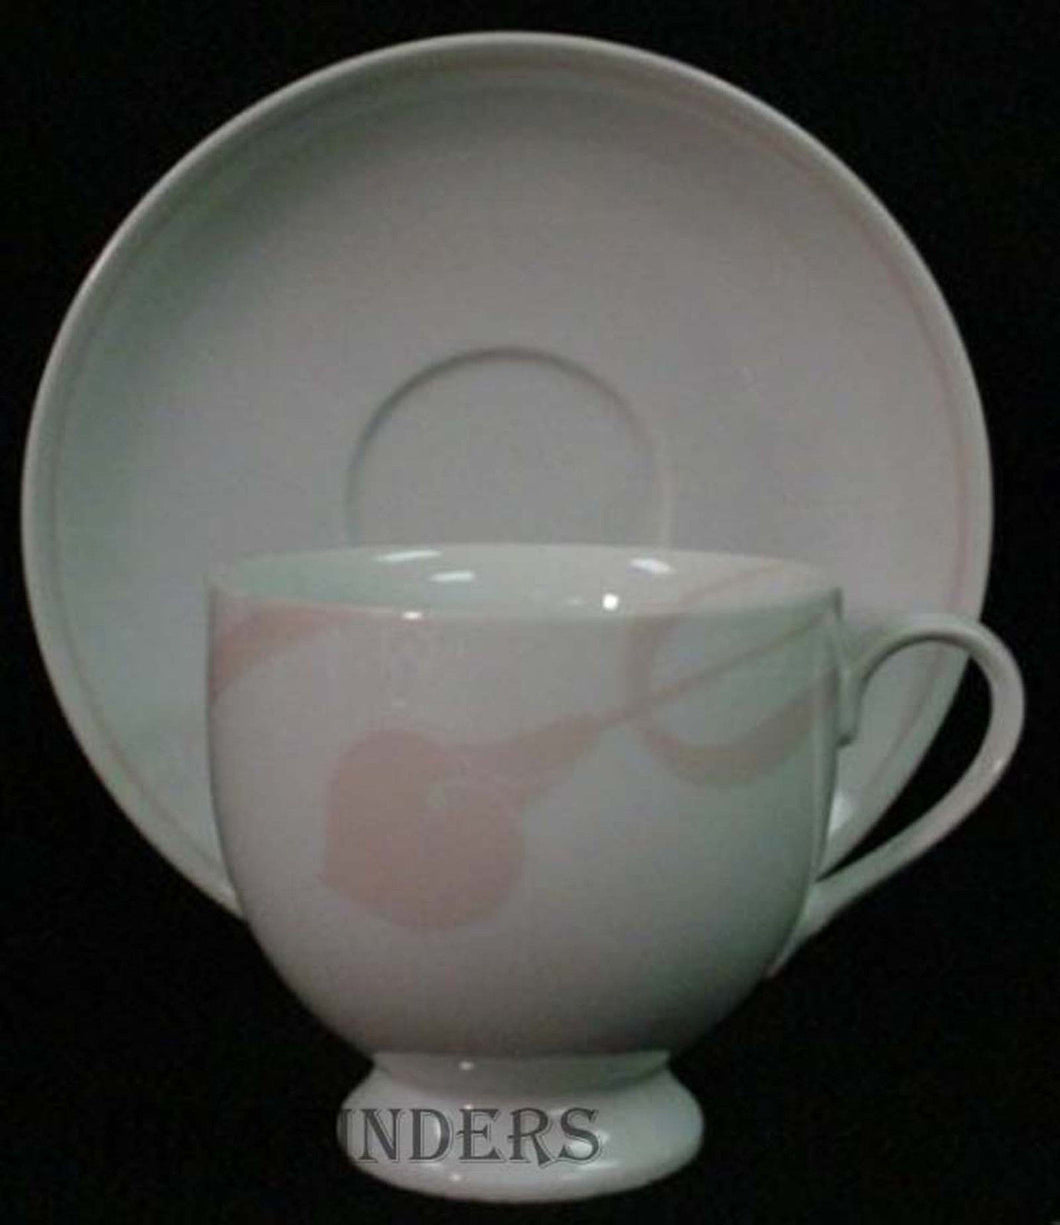 MIKASA china CLASSIC FLAIR-PEACH LBD01 pattern Cup and Saucer - Set of Two (2)